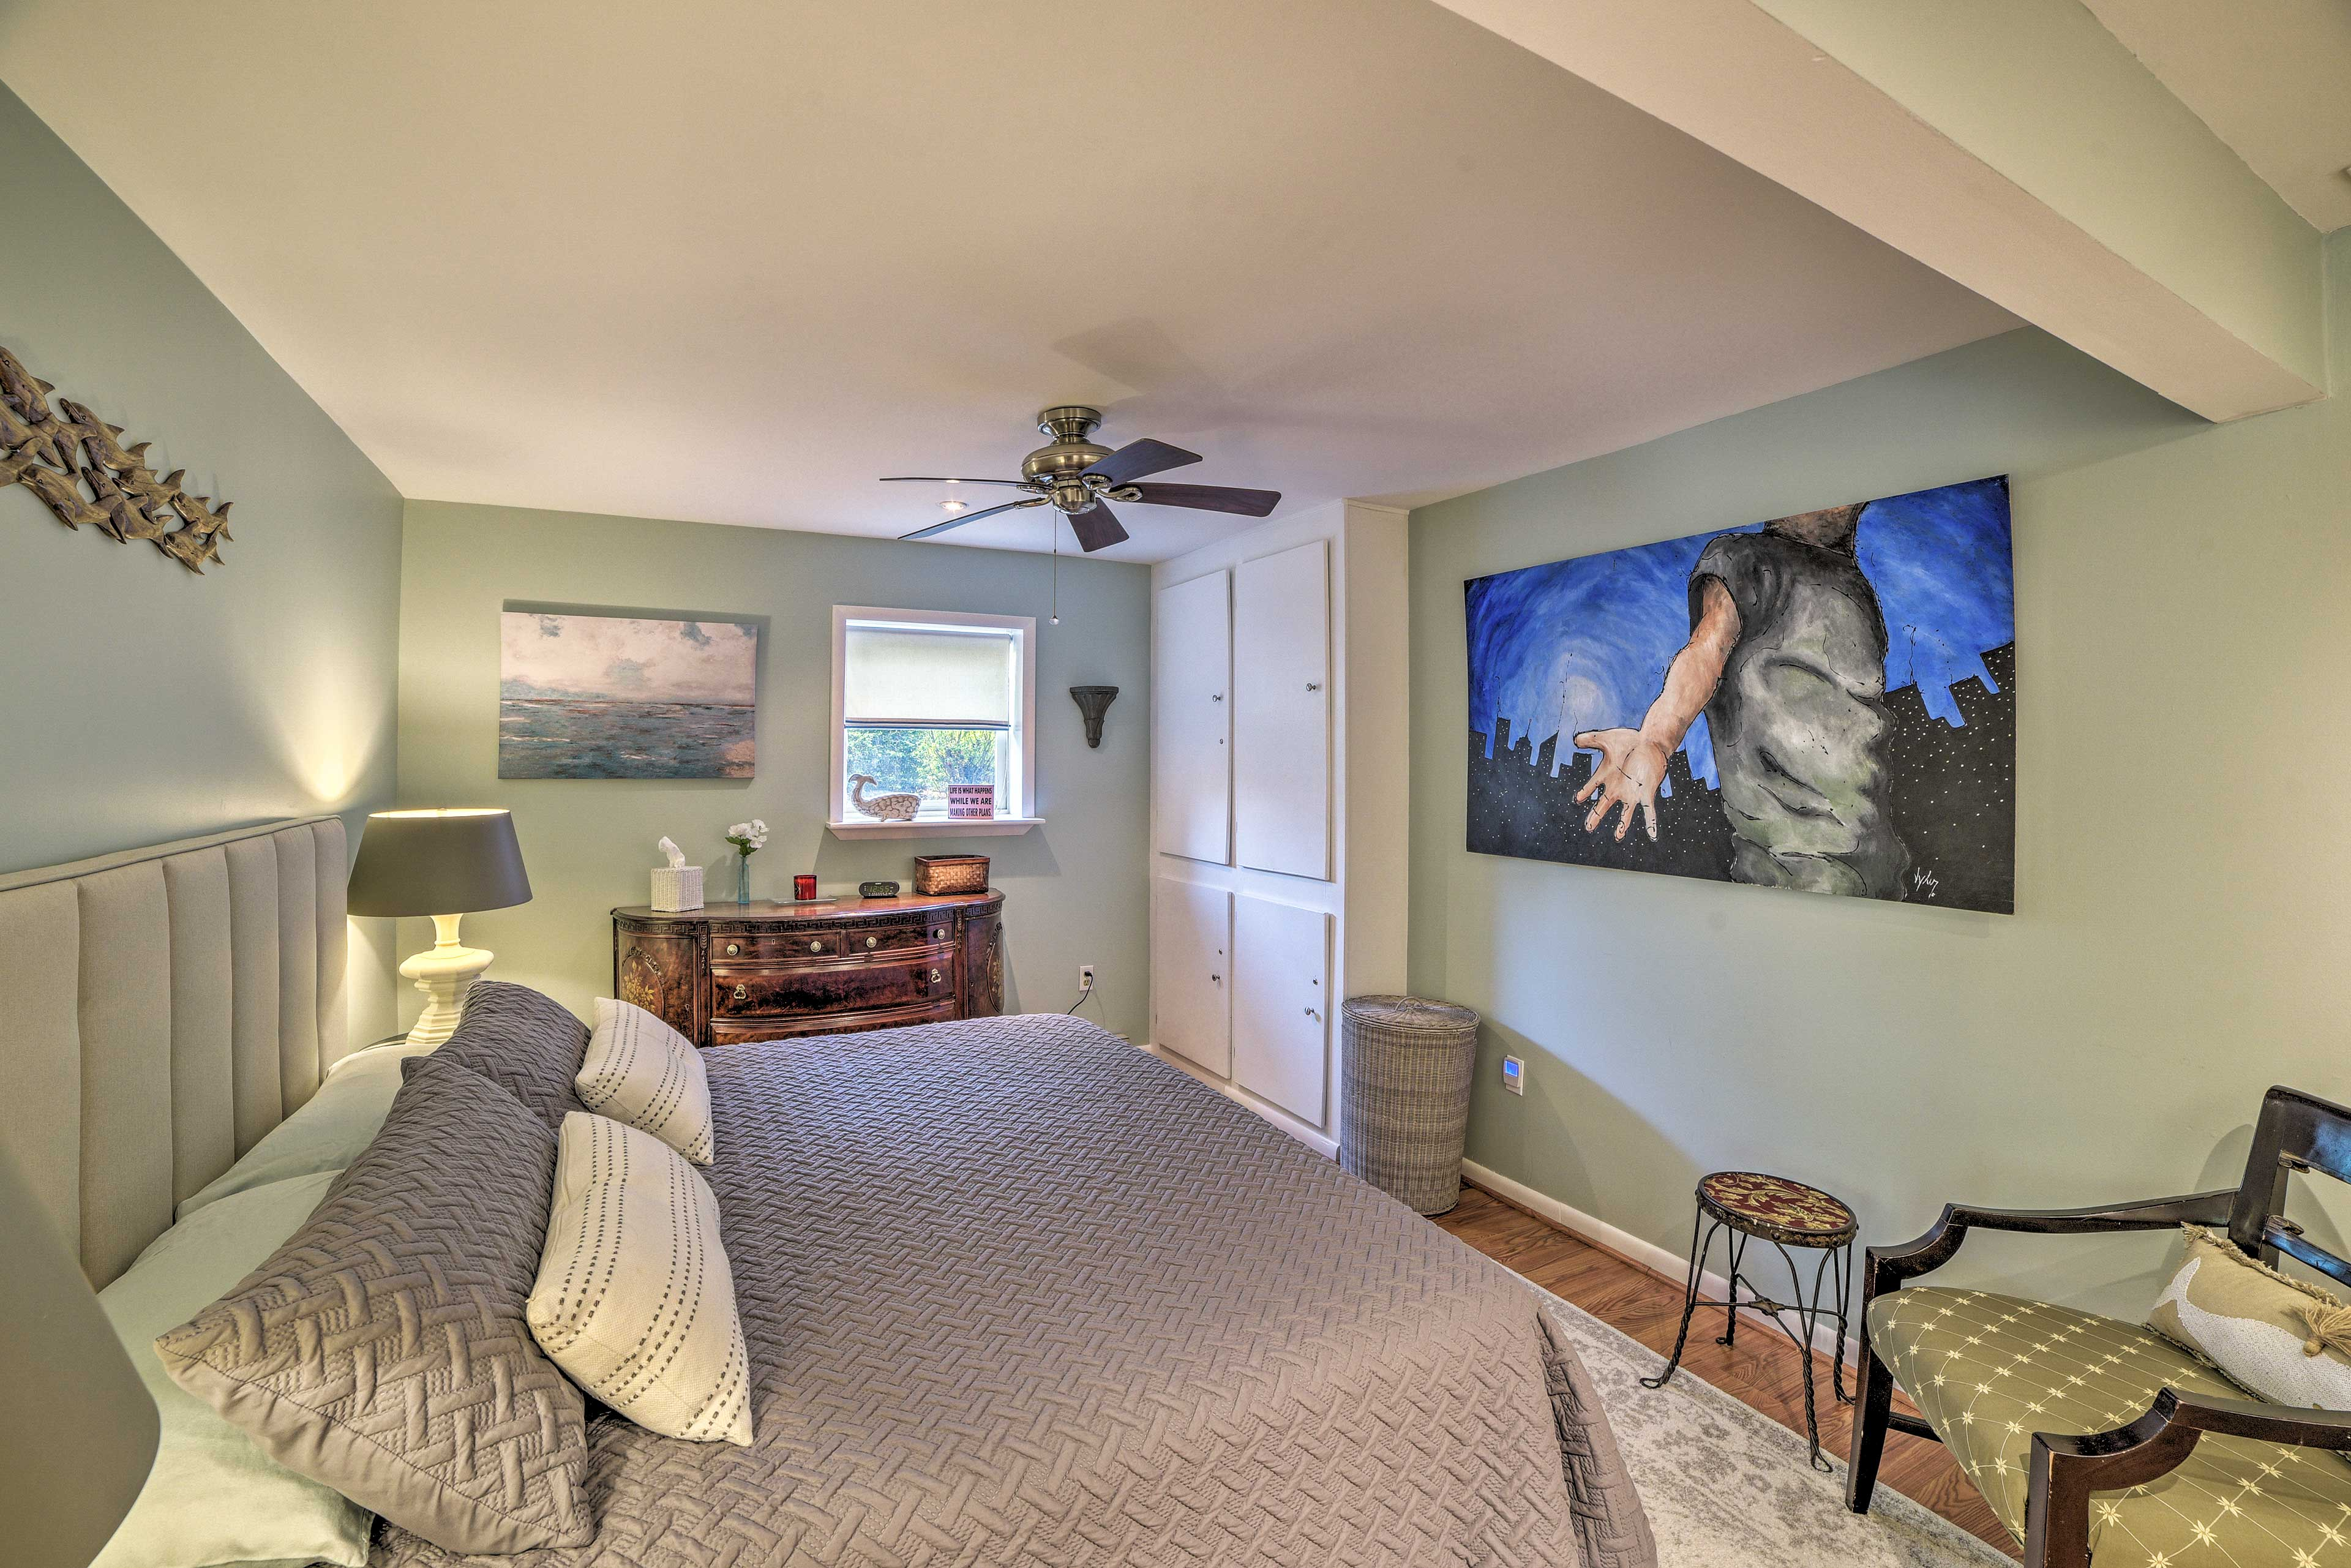 Wake up to unique artwork on the walls!